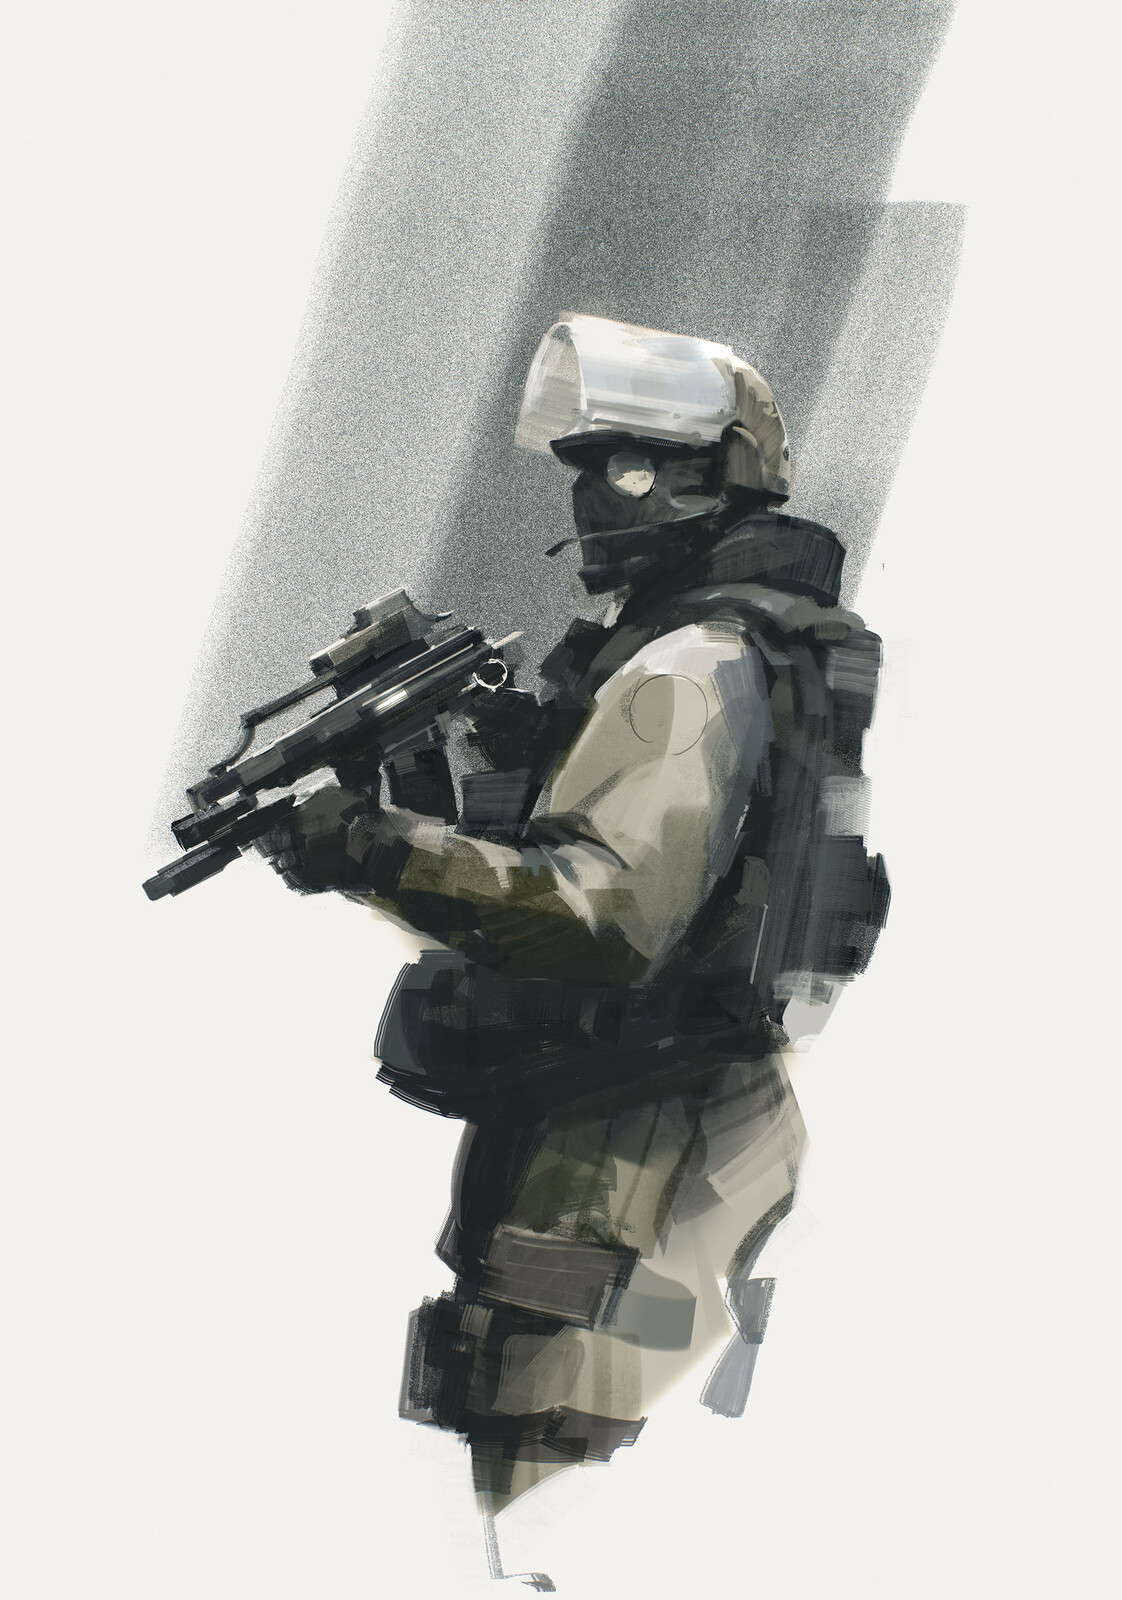 SWAT and recent sketches and process